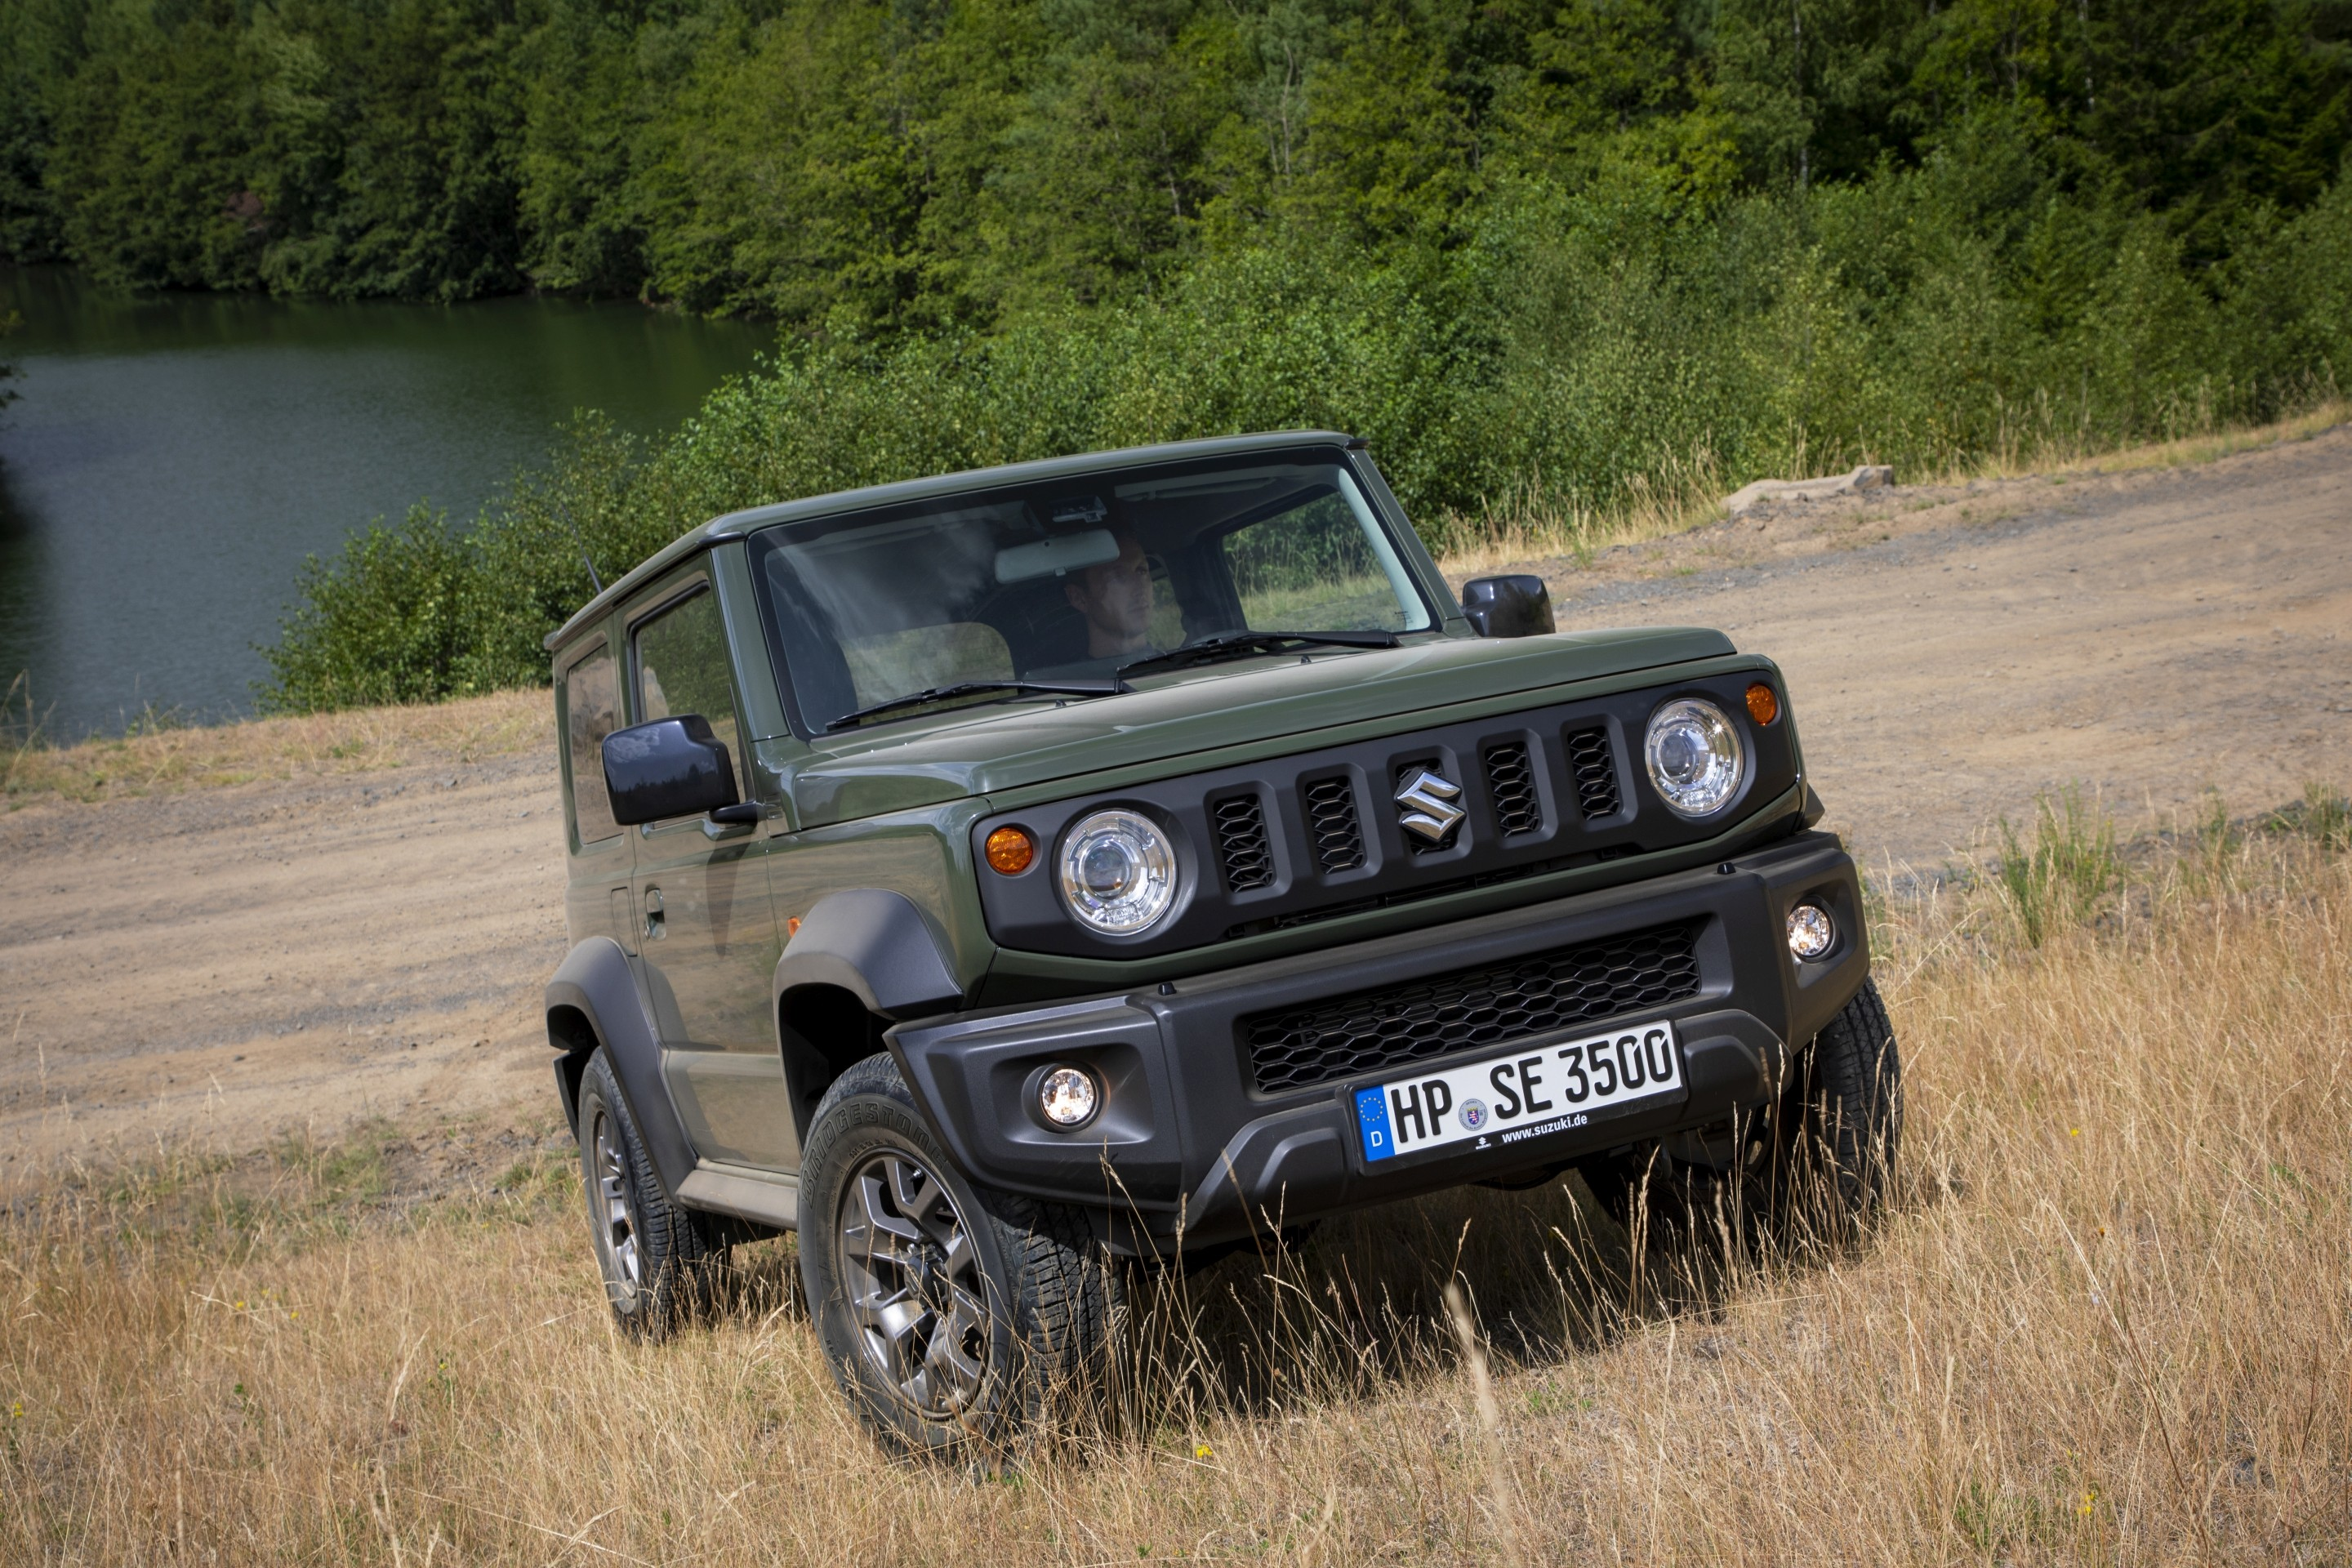 Mercedes Baby Grow 2020 Suzuki Jimny Imagined As Dual Cab Pickup Truck